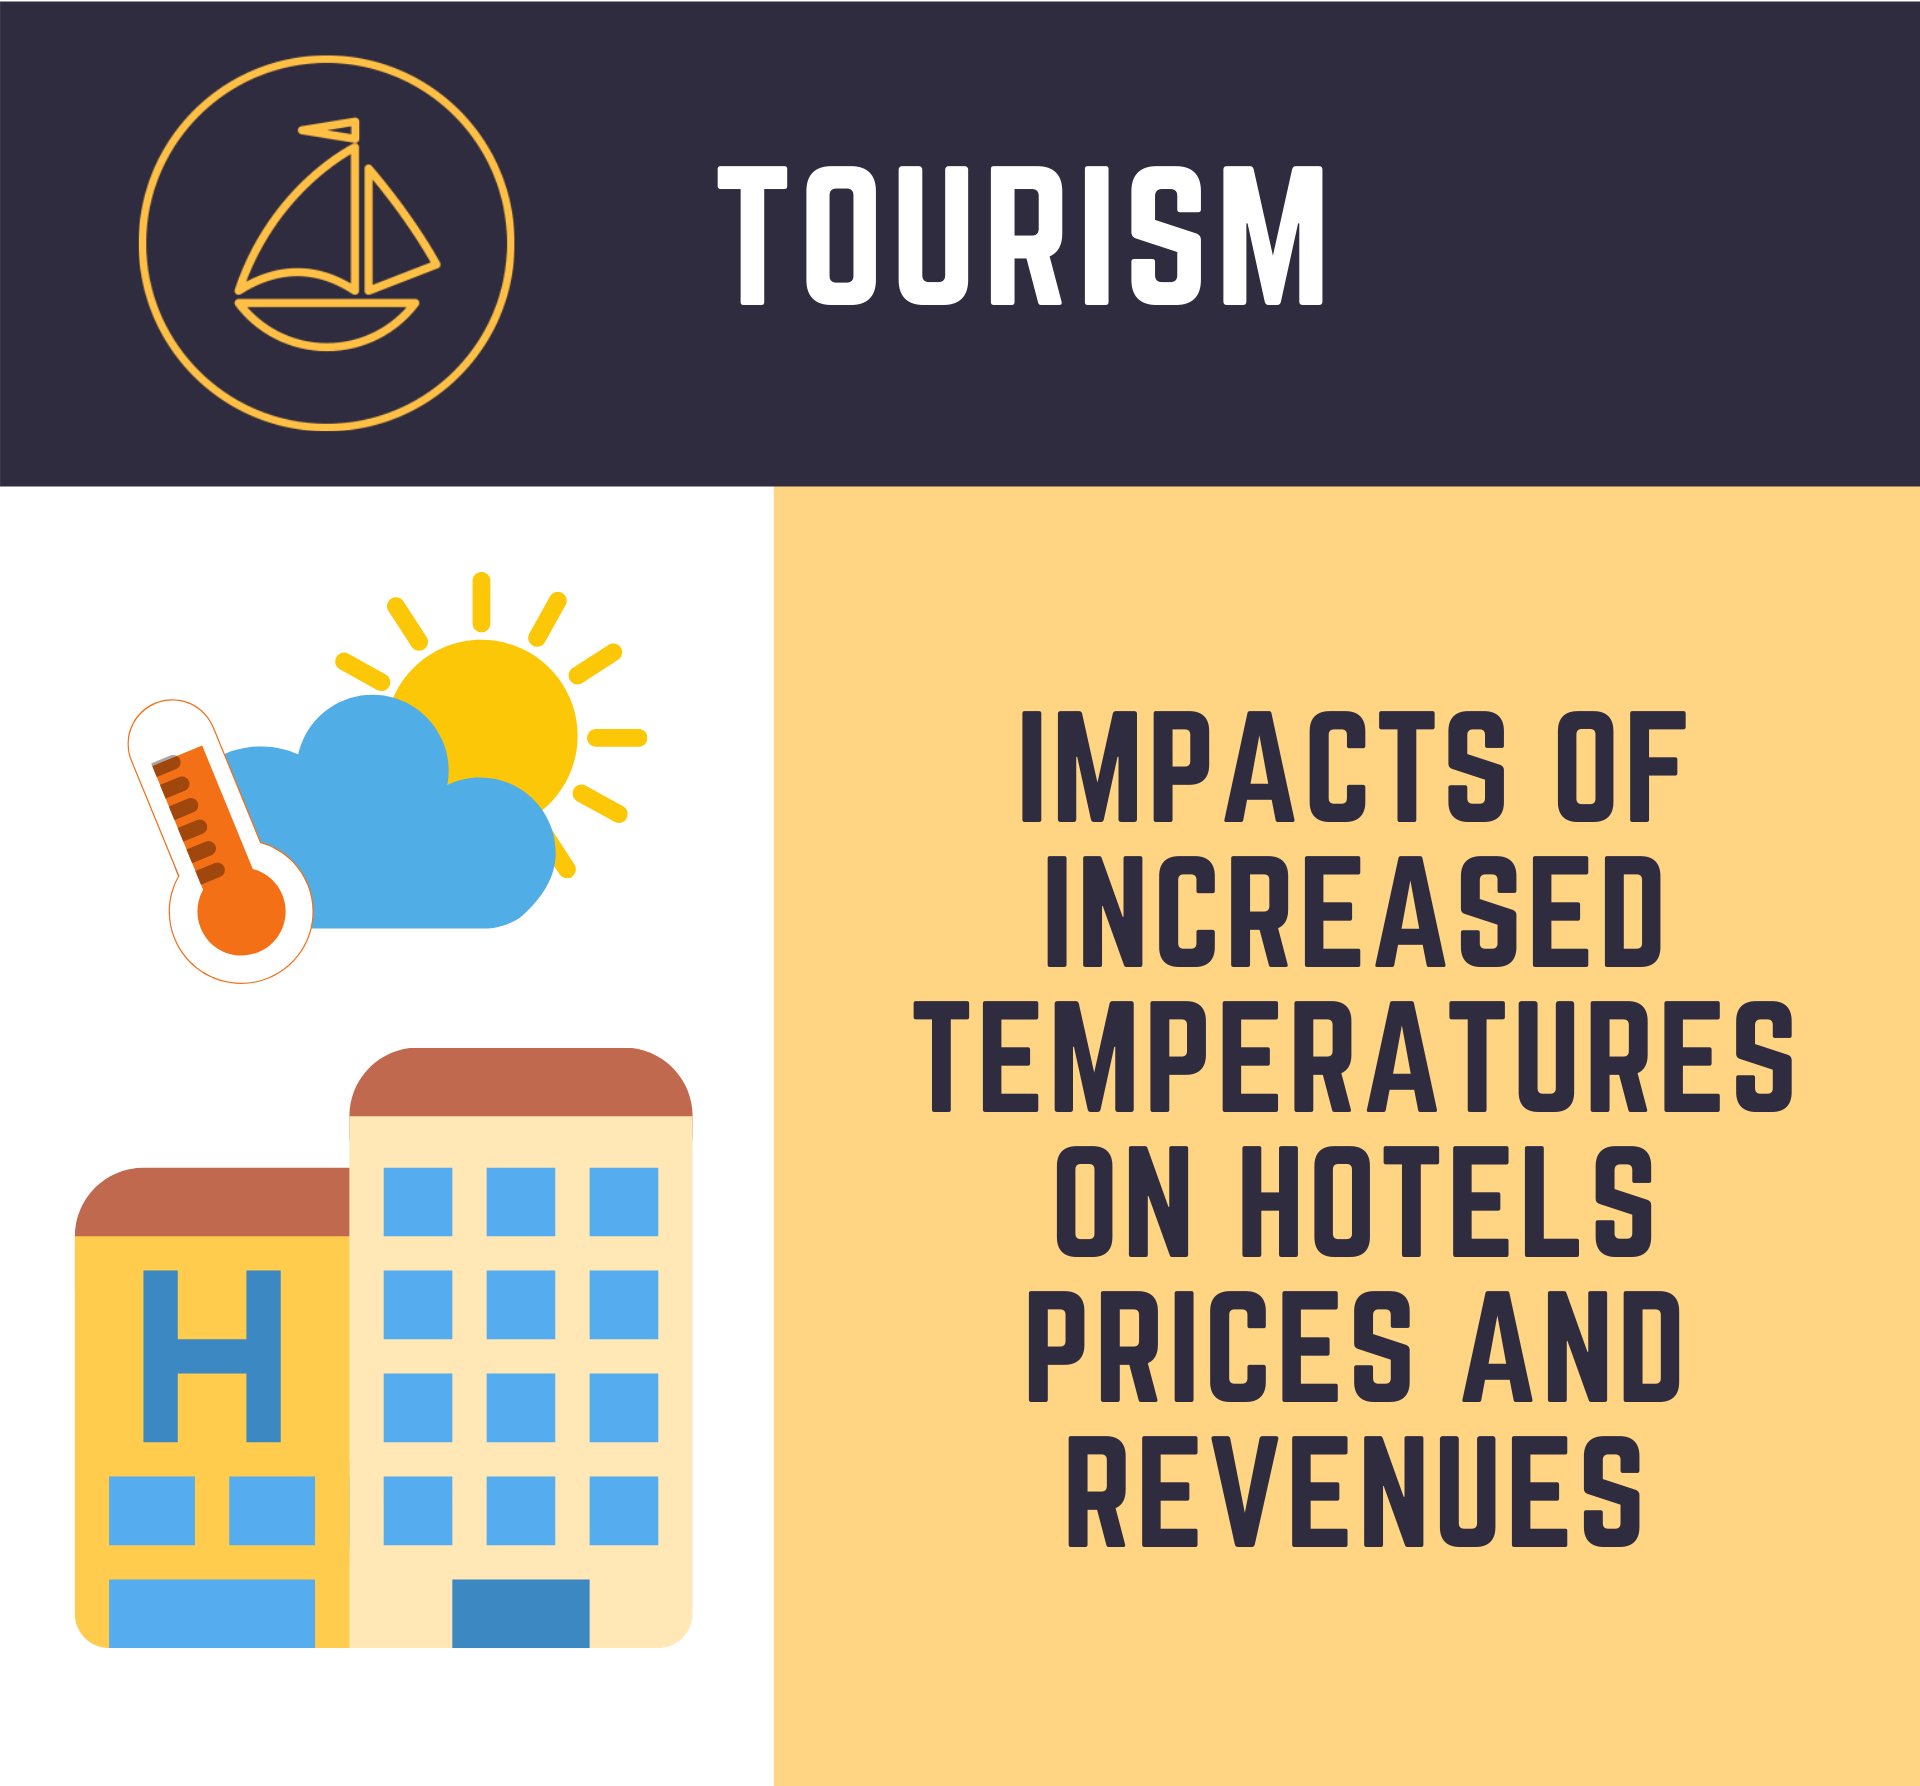 IMPACTS OF INCREASED TEMPERATURES ON HOTELS PRICES AND REVENUES